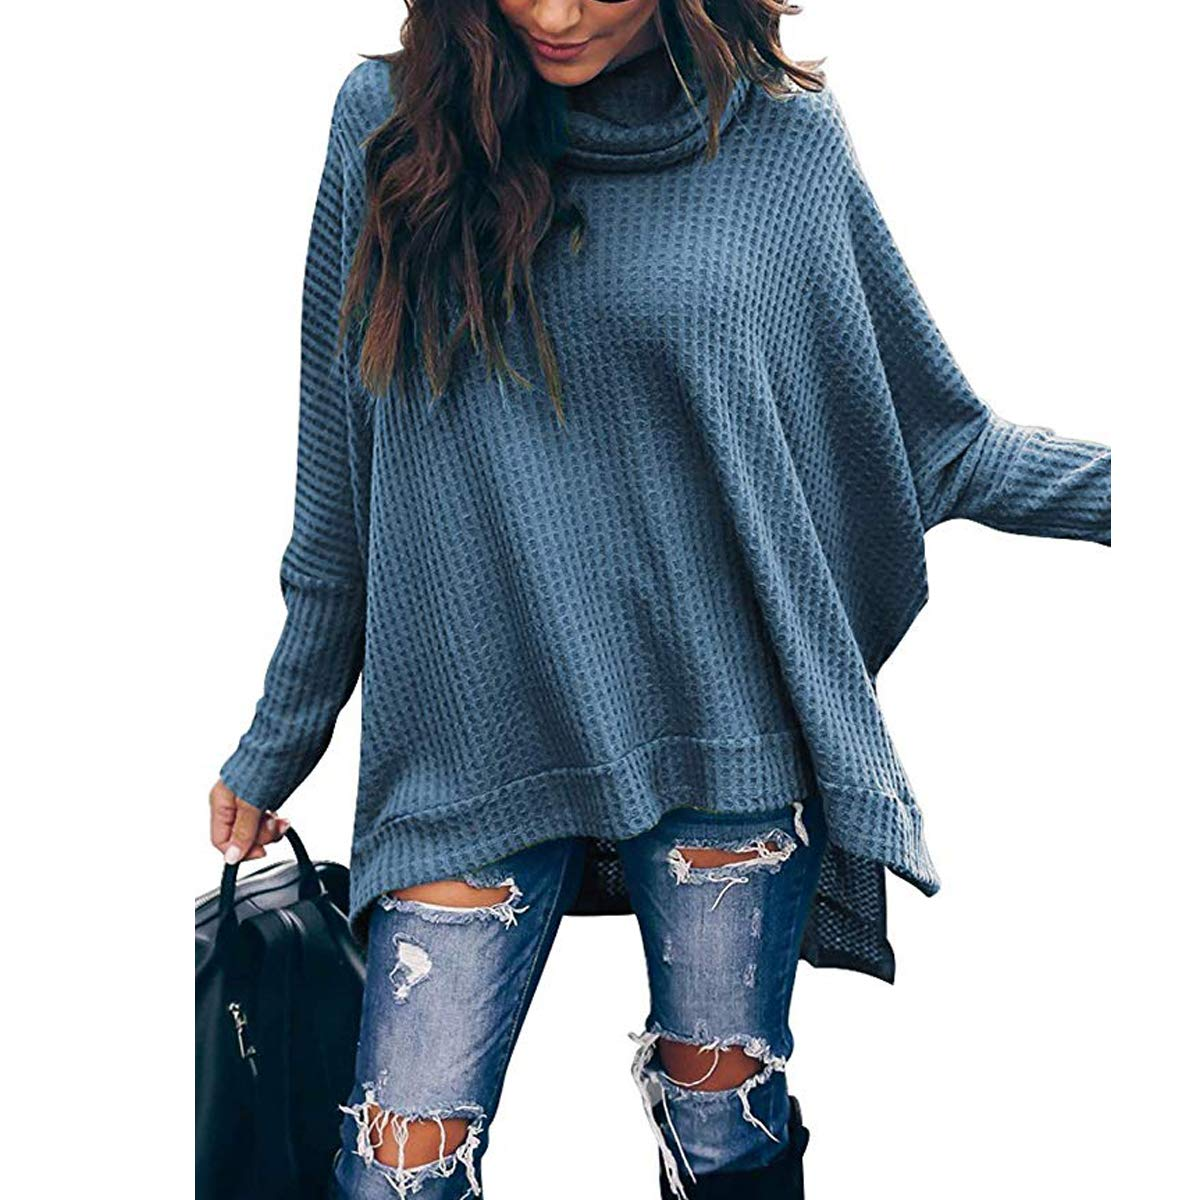 Women Turtle Cowl Neck Long Batwing Sleeve Waffle Knit Pullover Sweaters Oversized Loose Fit High Low Tunic Tops